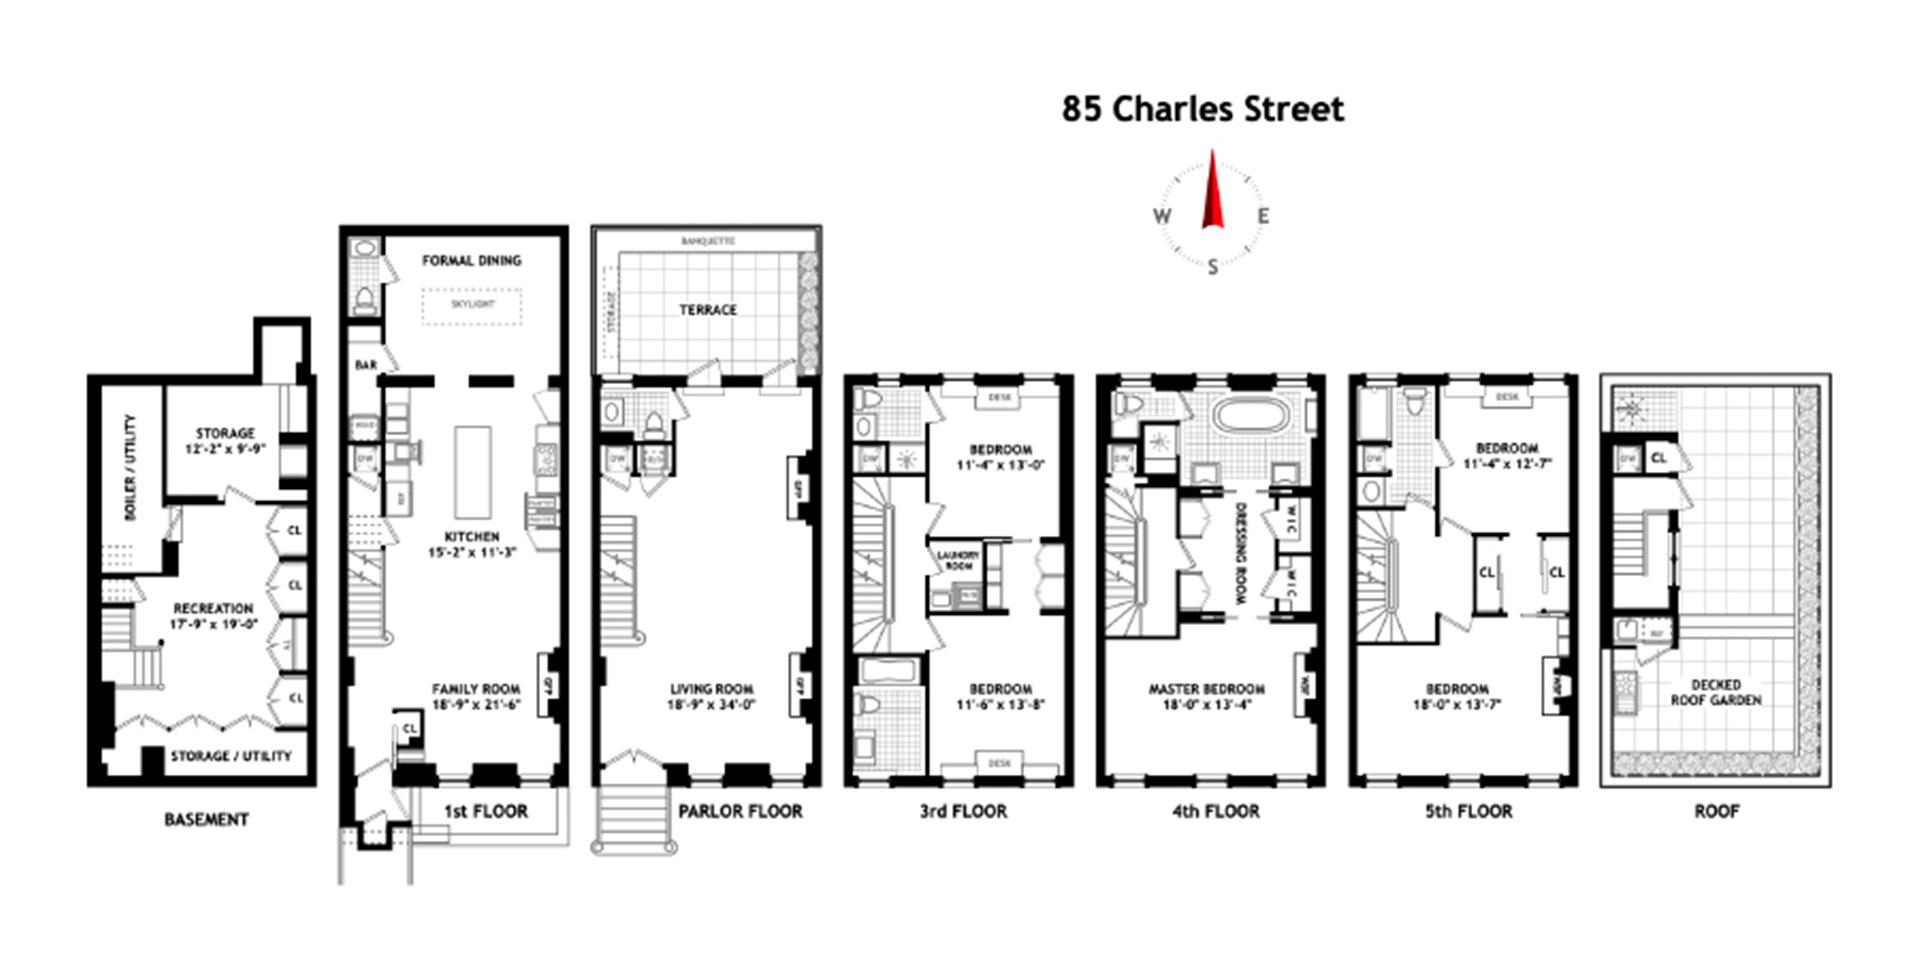 Floor plan of 85 Charles St - West Village - Meatpacking District, New York